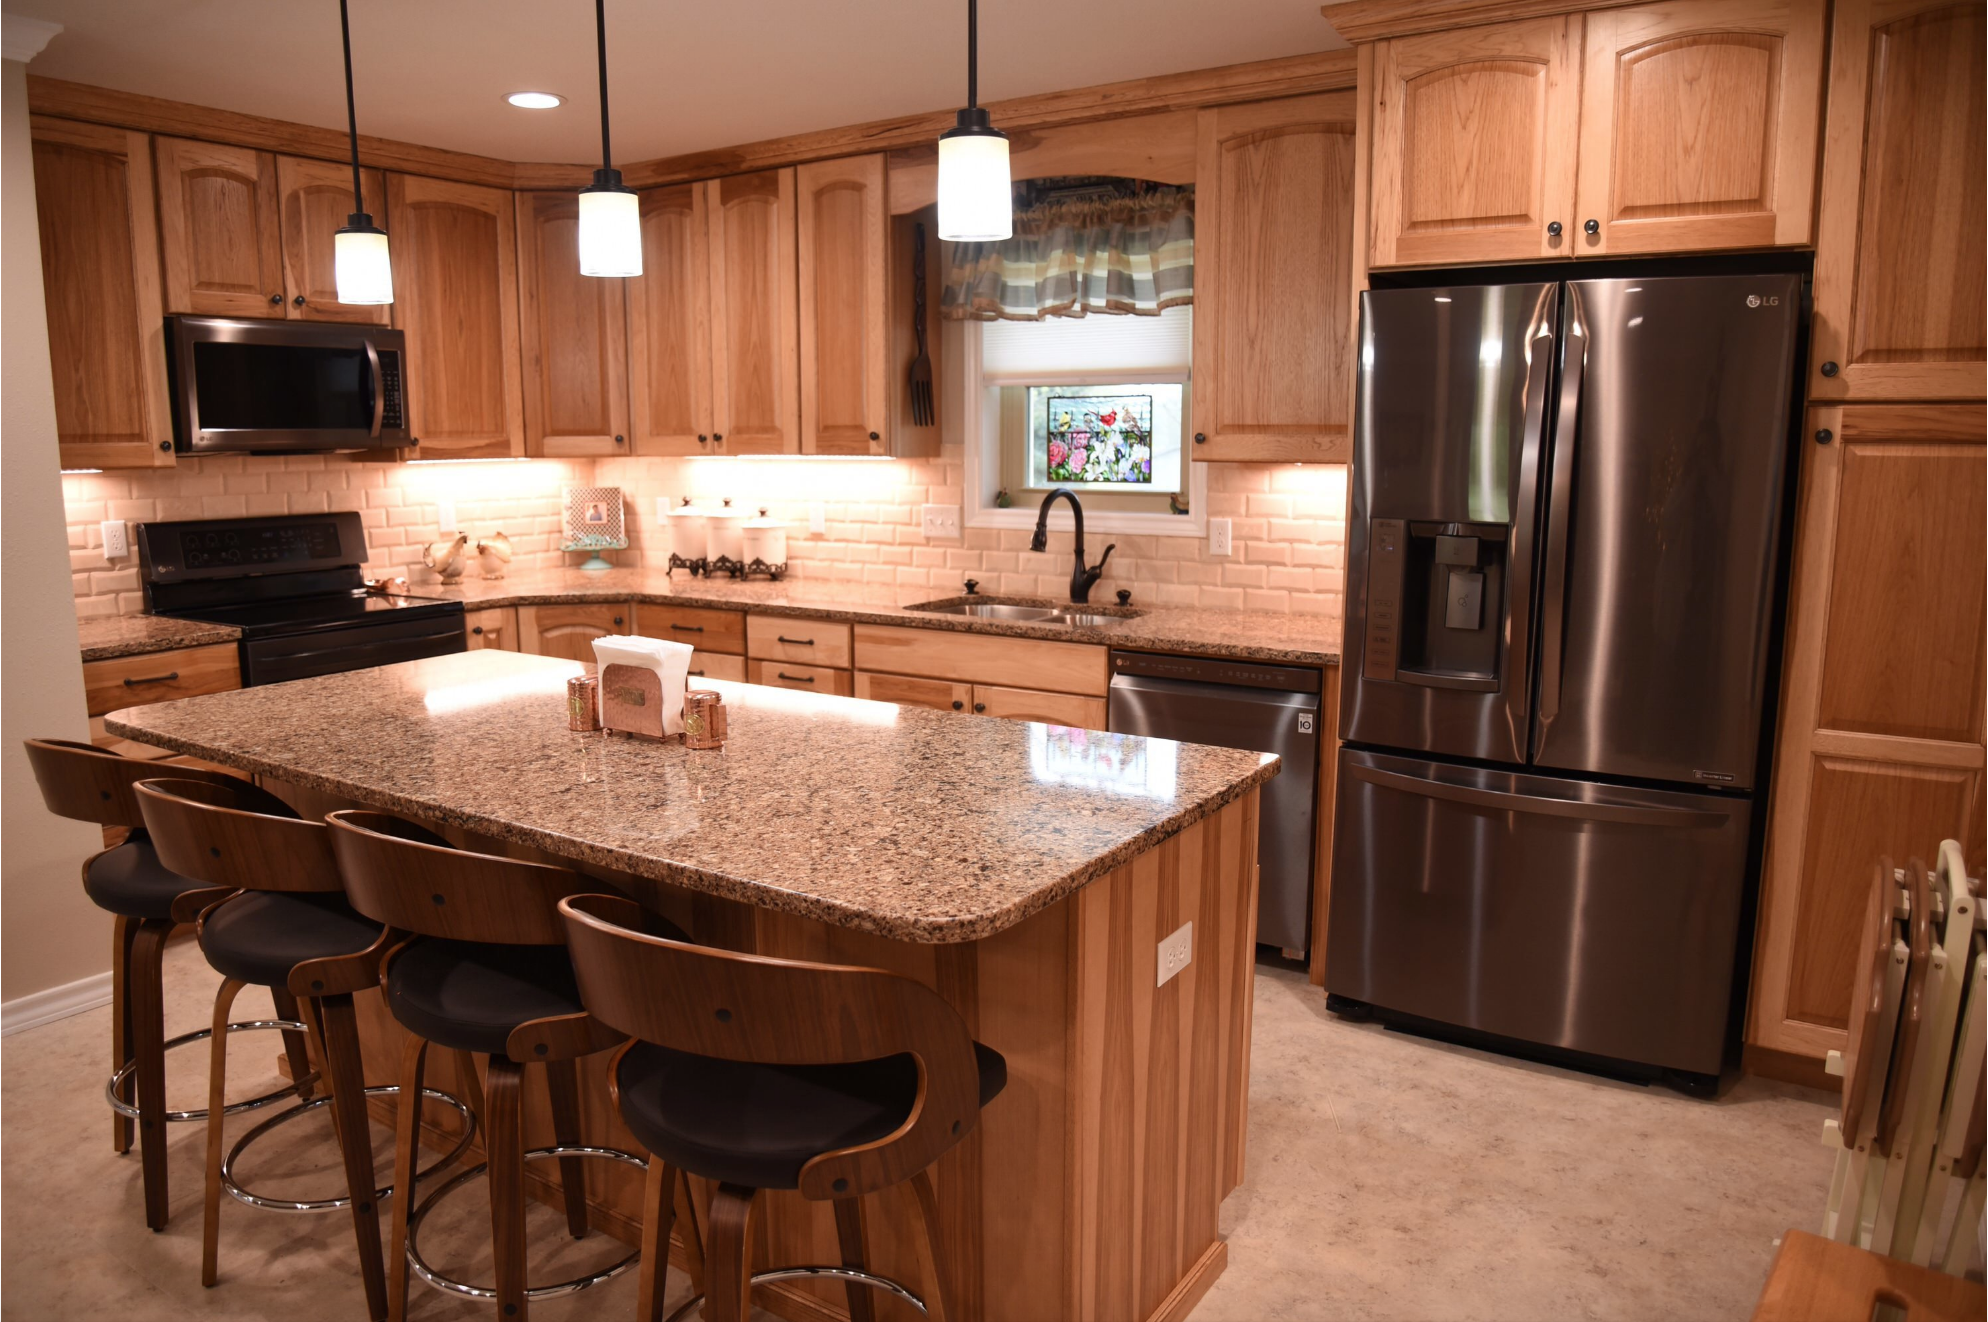 MidContinent Cabinetry ,  Cambria Quartz countertops , 3x6 Mexican Travertine tile,and a  Soci sink  are included in this kitchen project.